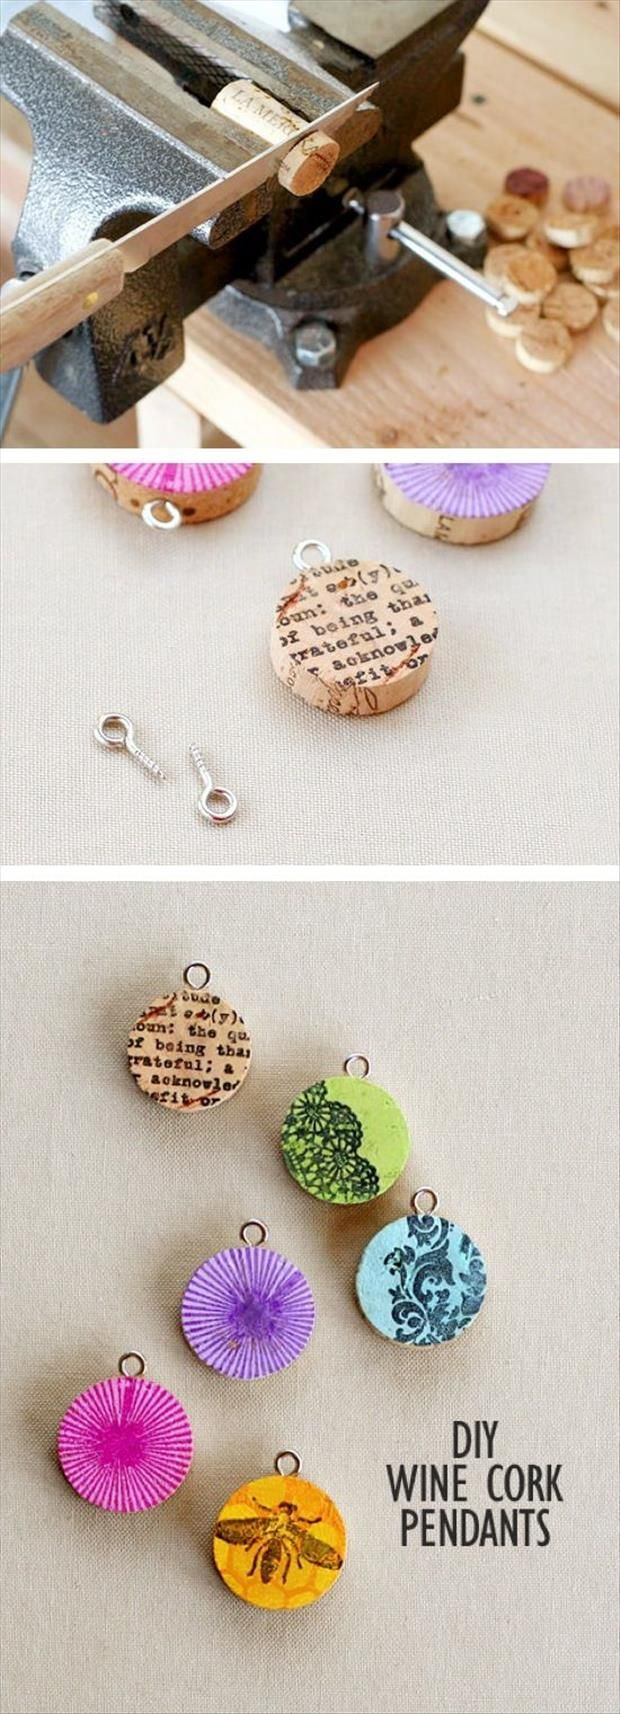 Do it yourself crafts with wine corks 40 pics gifts pinterest diy cork screw pendannts crafts craft ideas easy crafts diy ideas diy crafts cool crafts cool diy solutioingenieria Choice Image